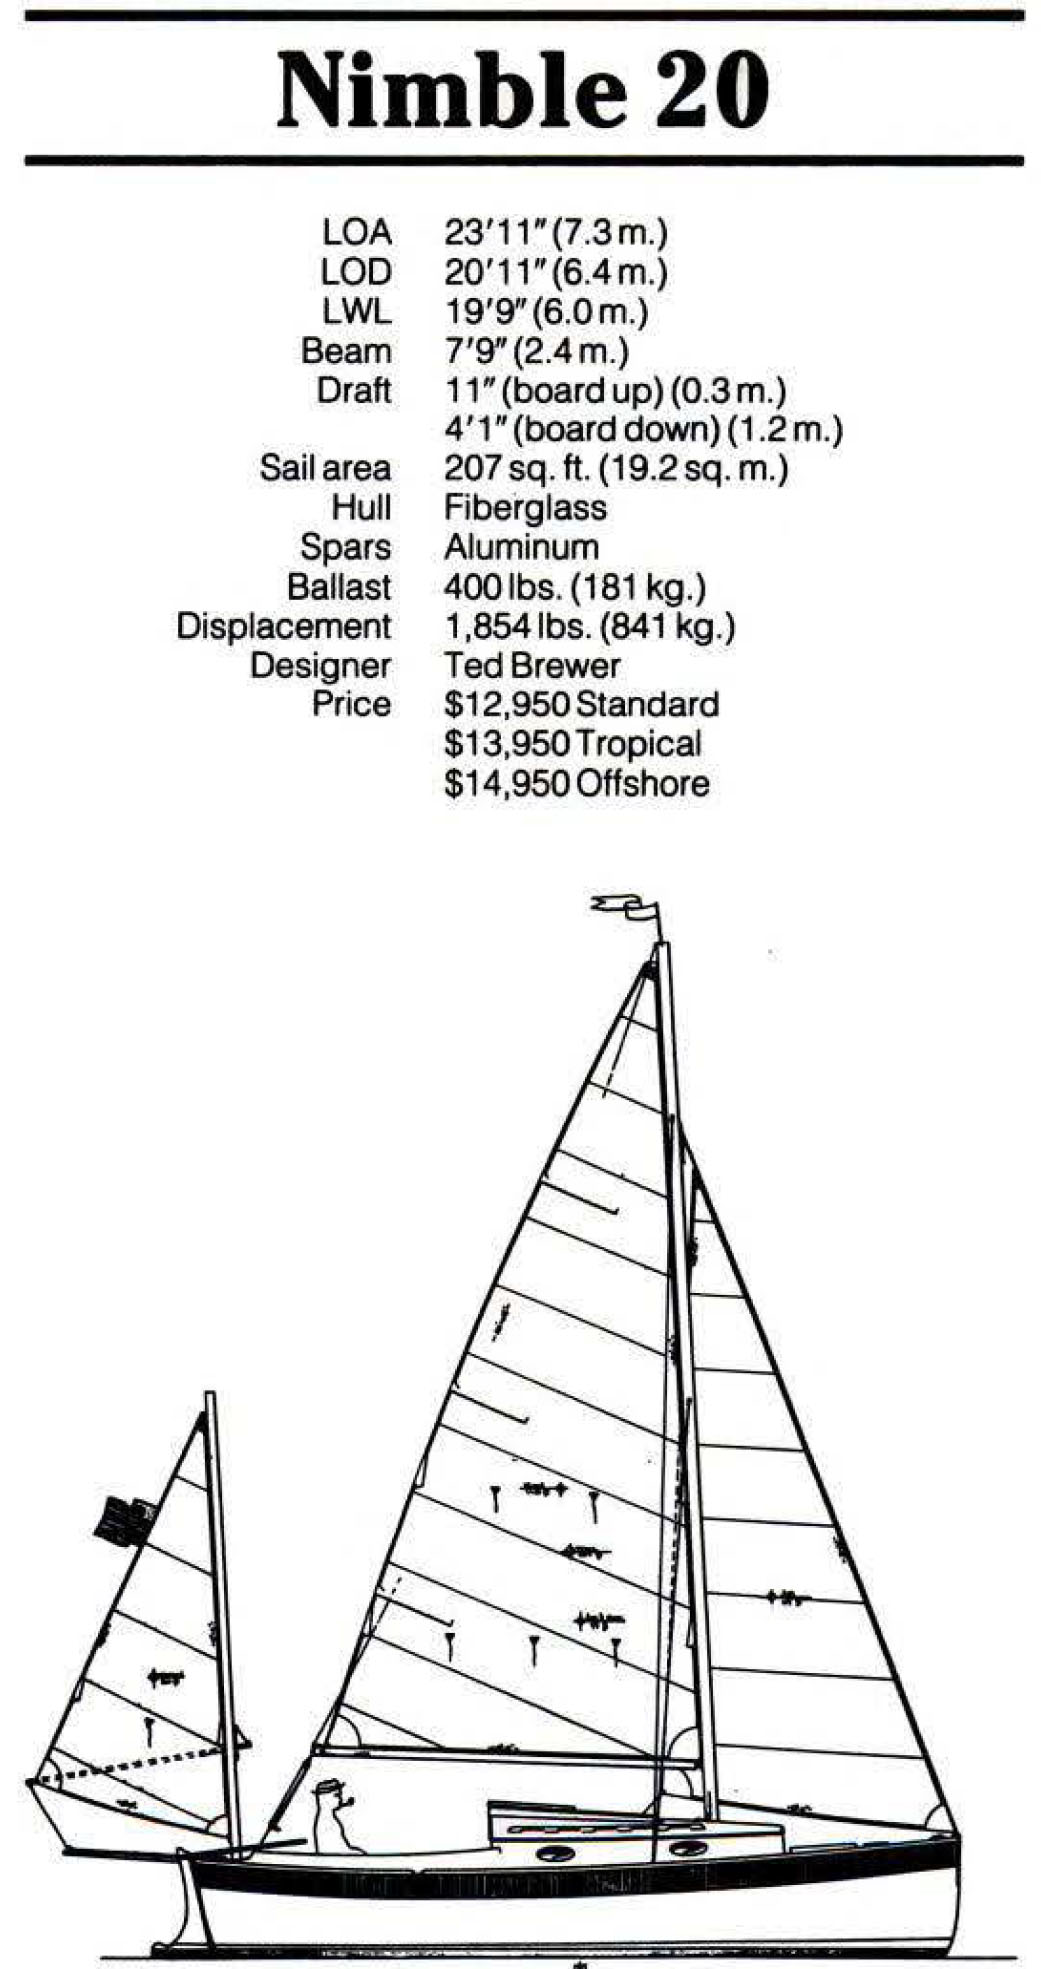 Nimble 20 Sailboat Specifications